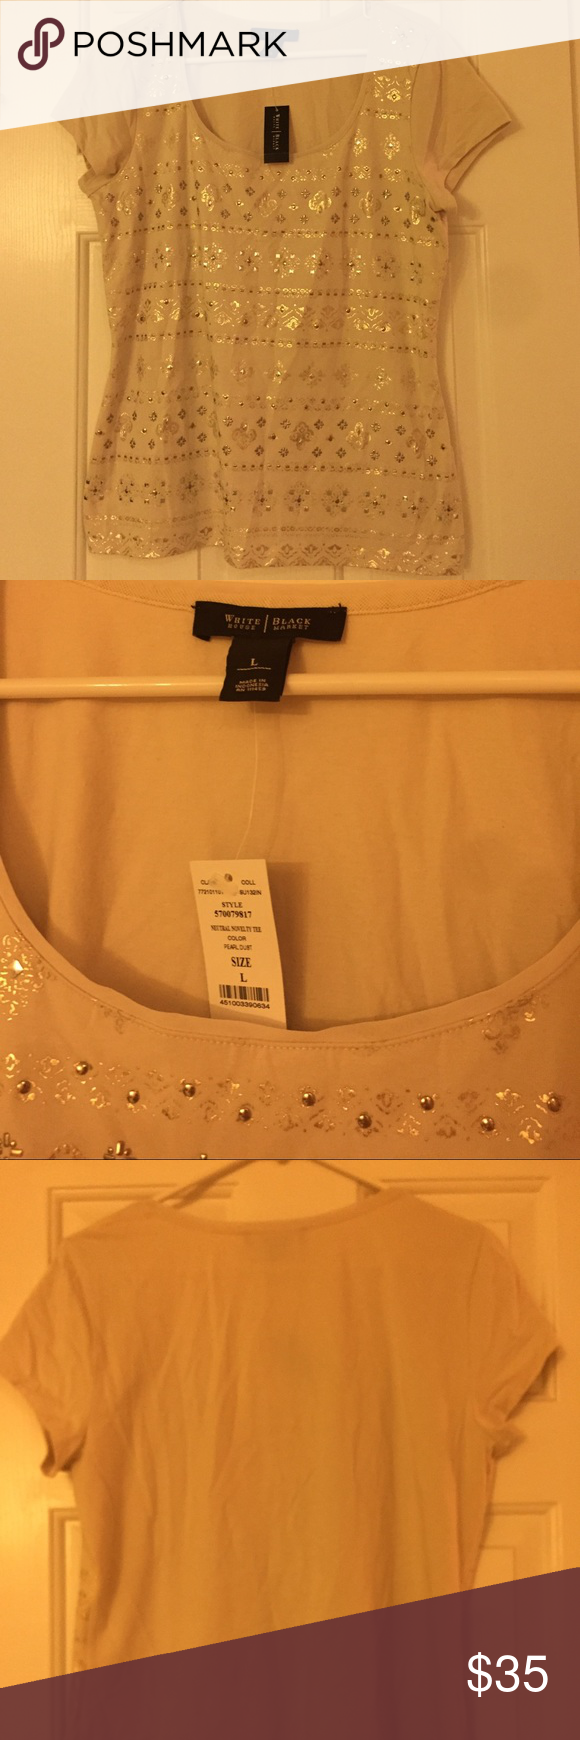 Whbm cream patterned top lnwt stretchy material white house